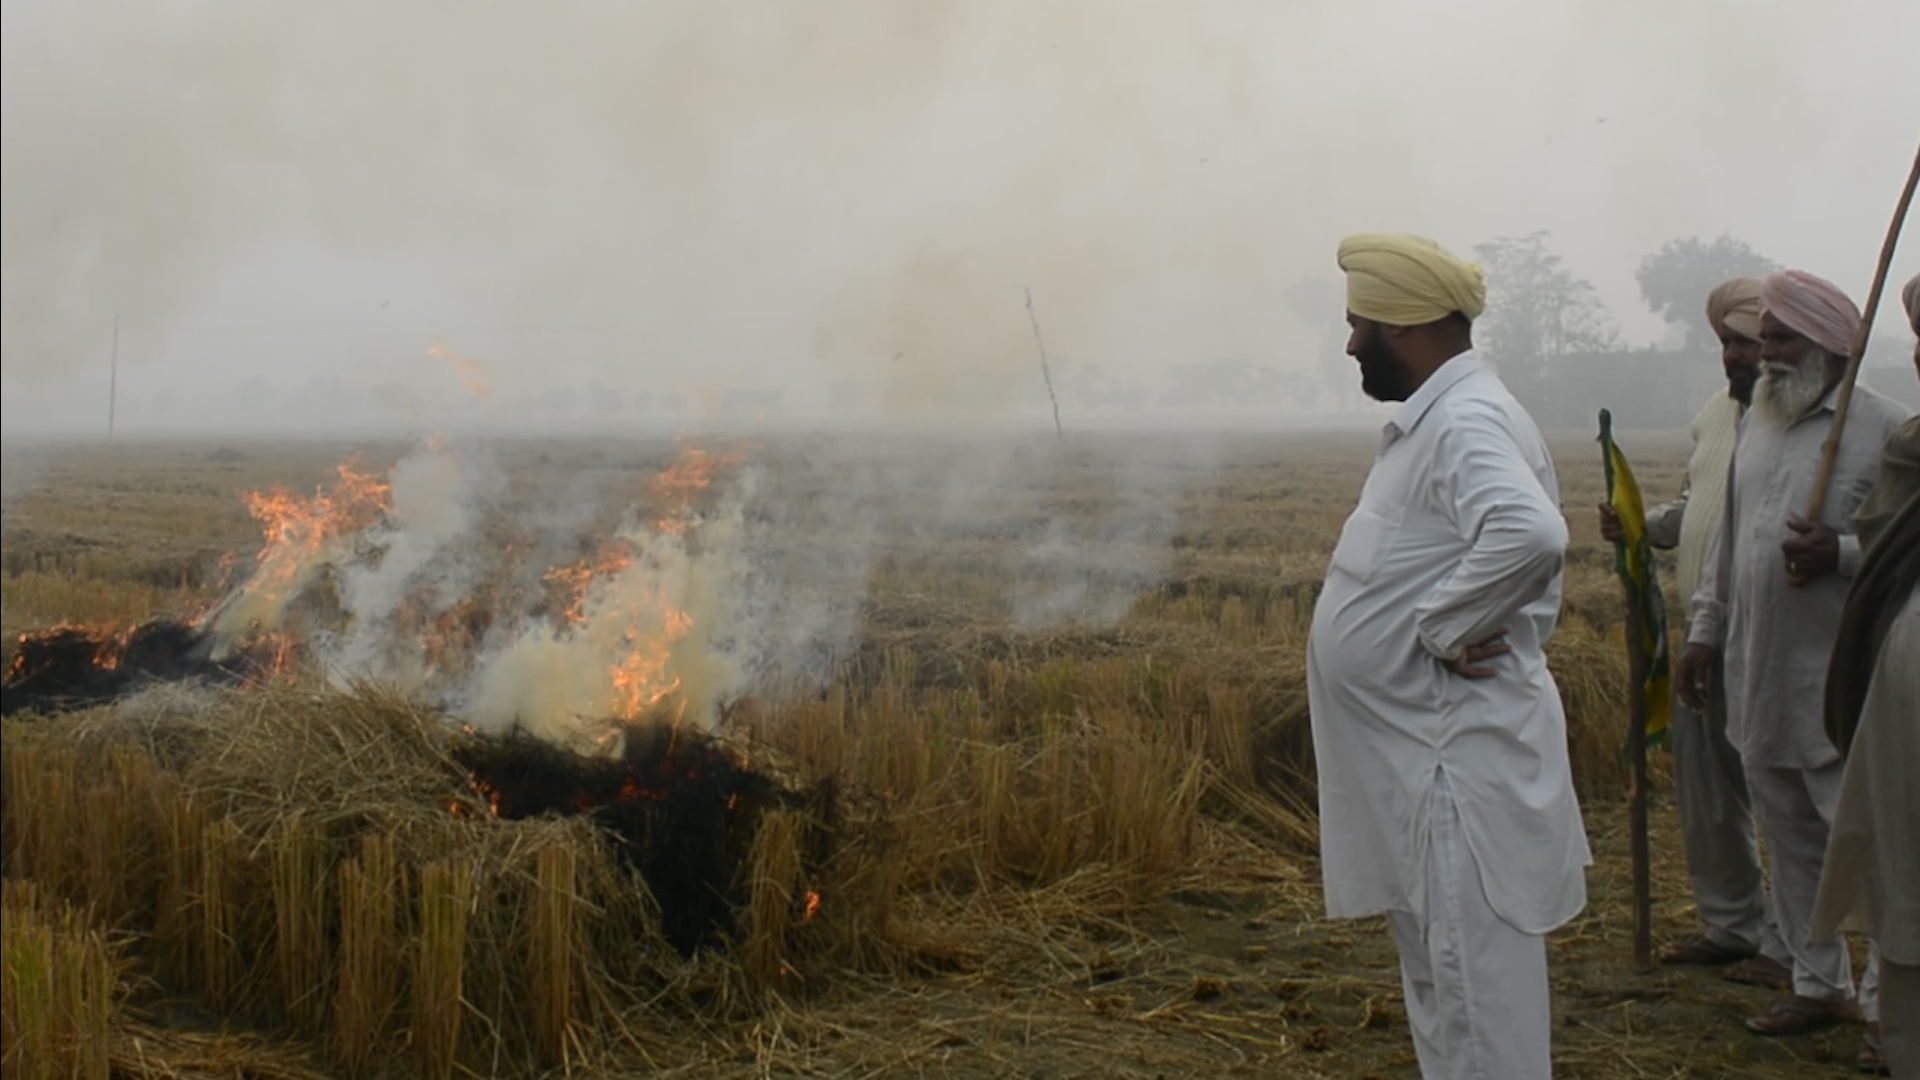 Watch: Why Farmers Are Burning Stubble in Punjab